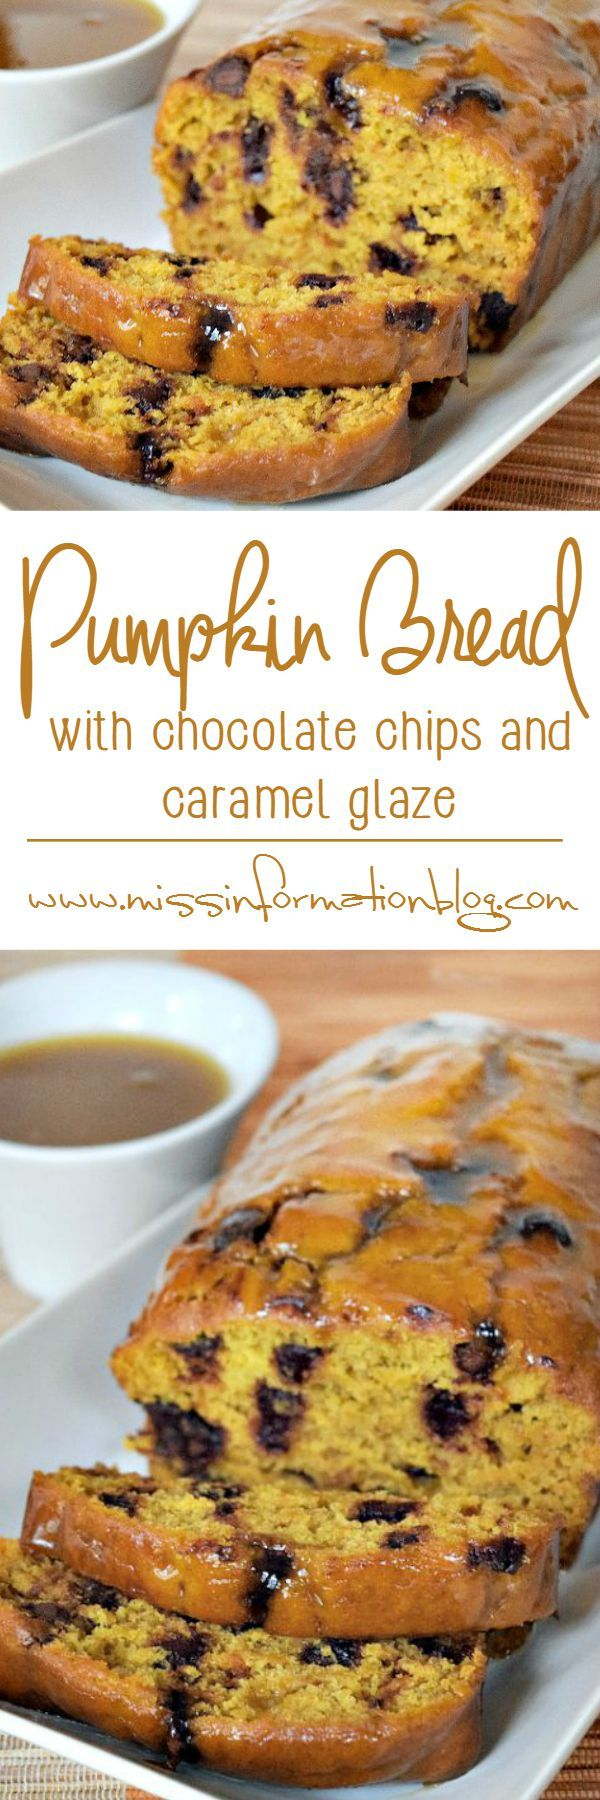 Pin this Pumpkin Bread Recipe with Chocolate Chips for fall it's easy to make and the chocolate chips add a richness you don't get from regular pumpkin bread